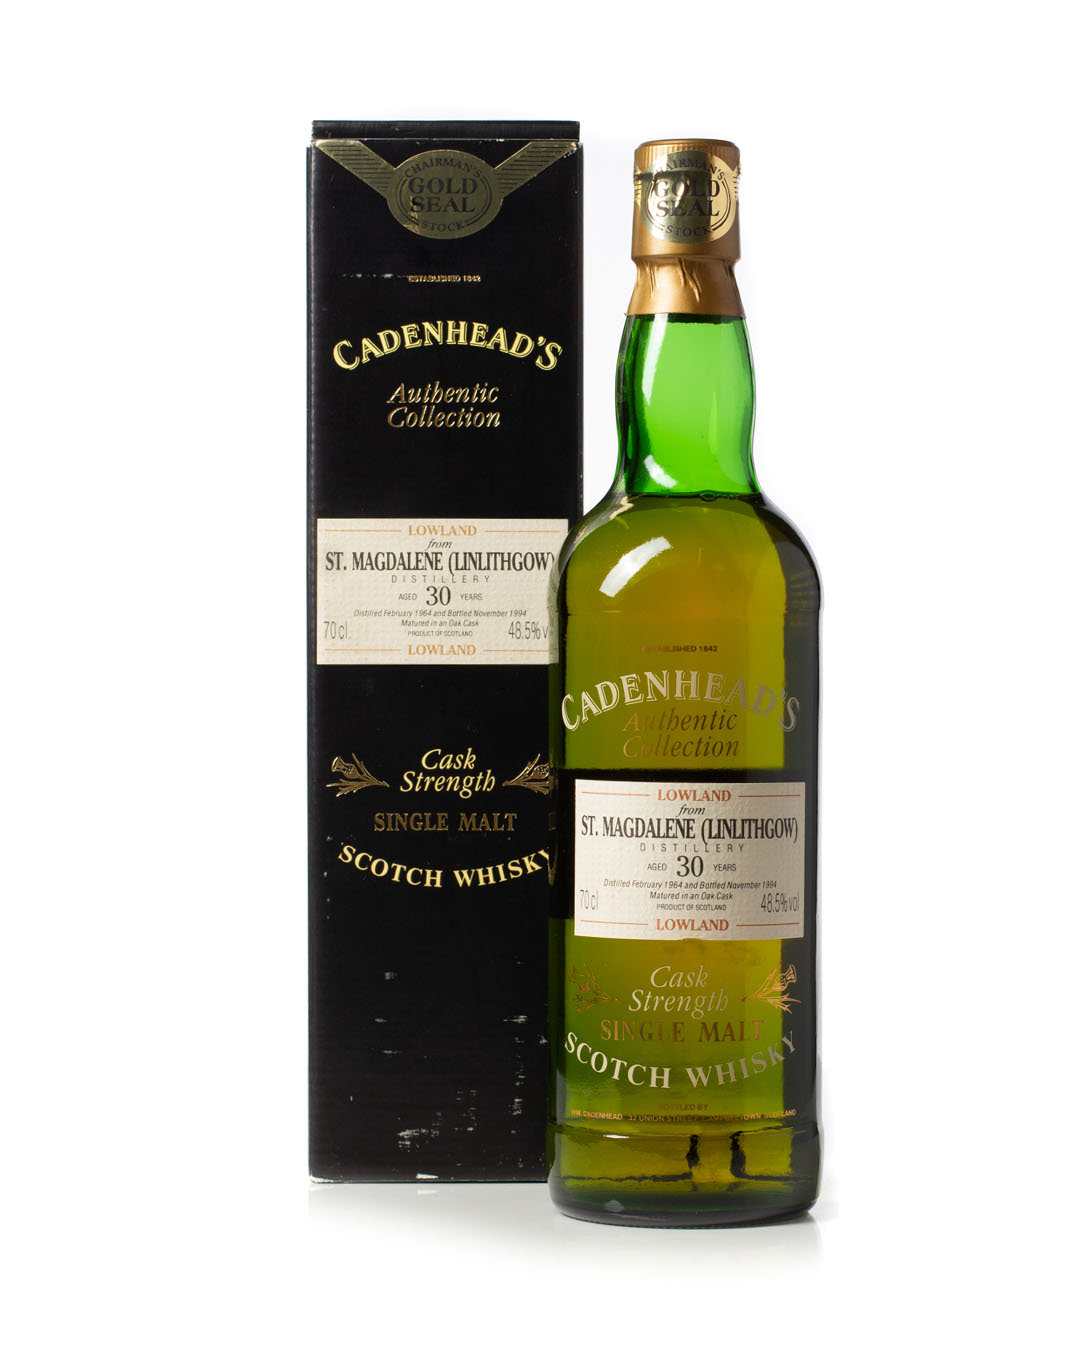 St Magdelene (Linlithgow) 1964 30 year old Cadenhead's Authentic Collection with Box for sale